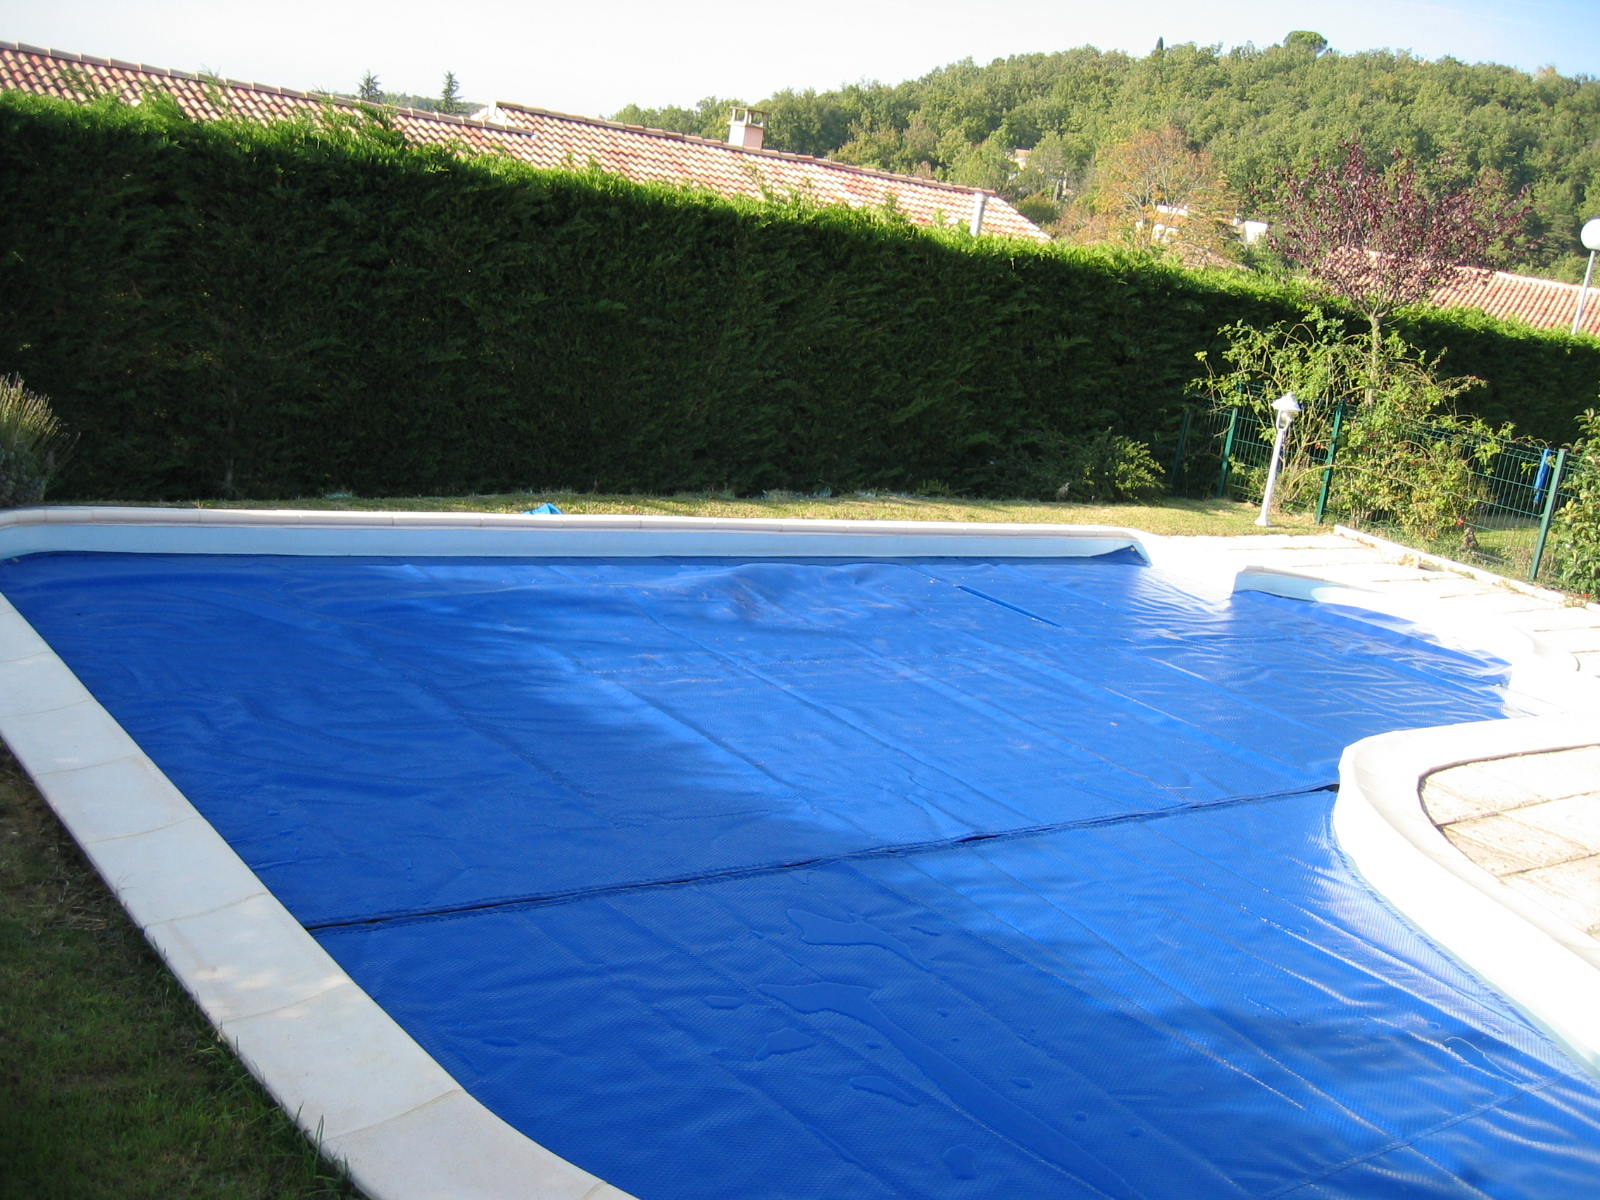 Les s curit s piscine for Bache piscine securite